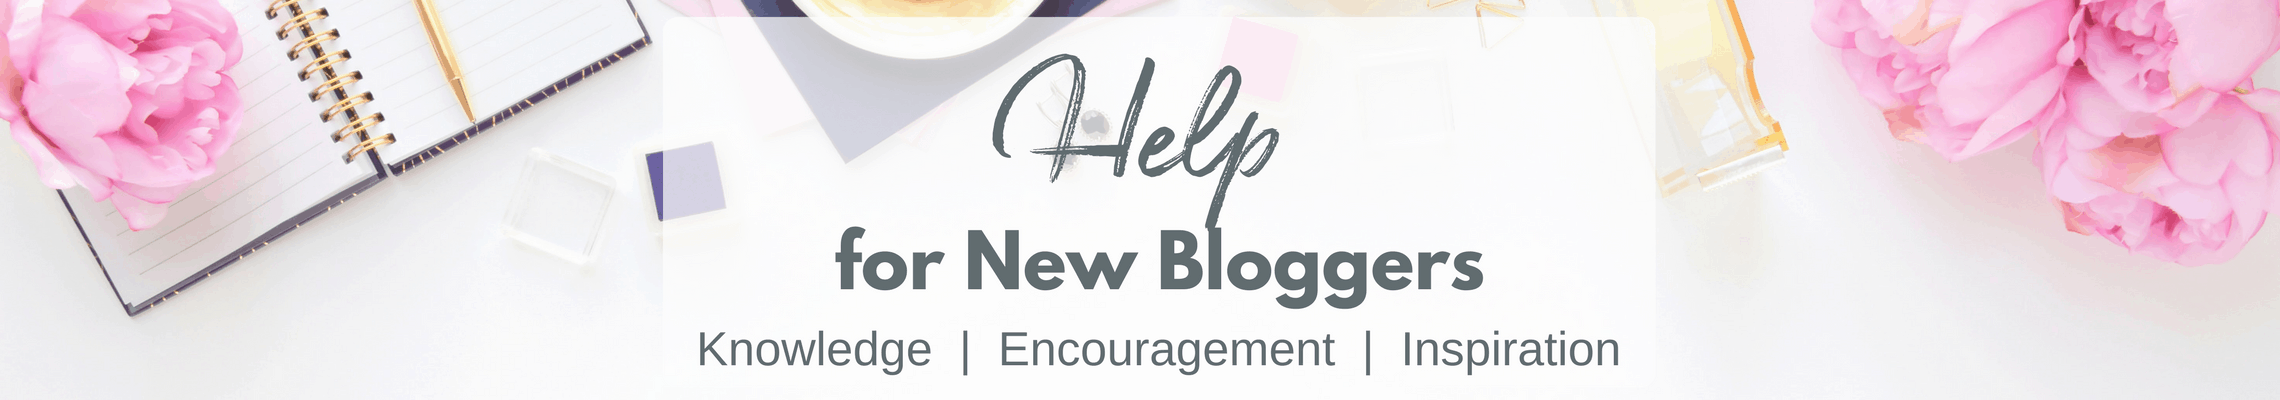 Help for New Bloggers